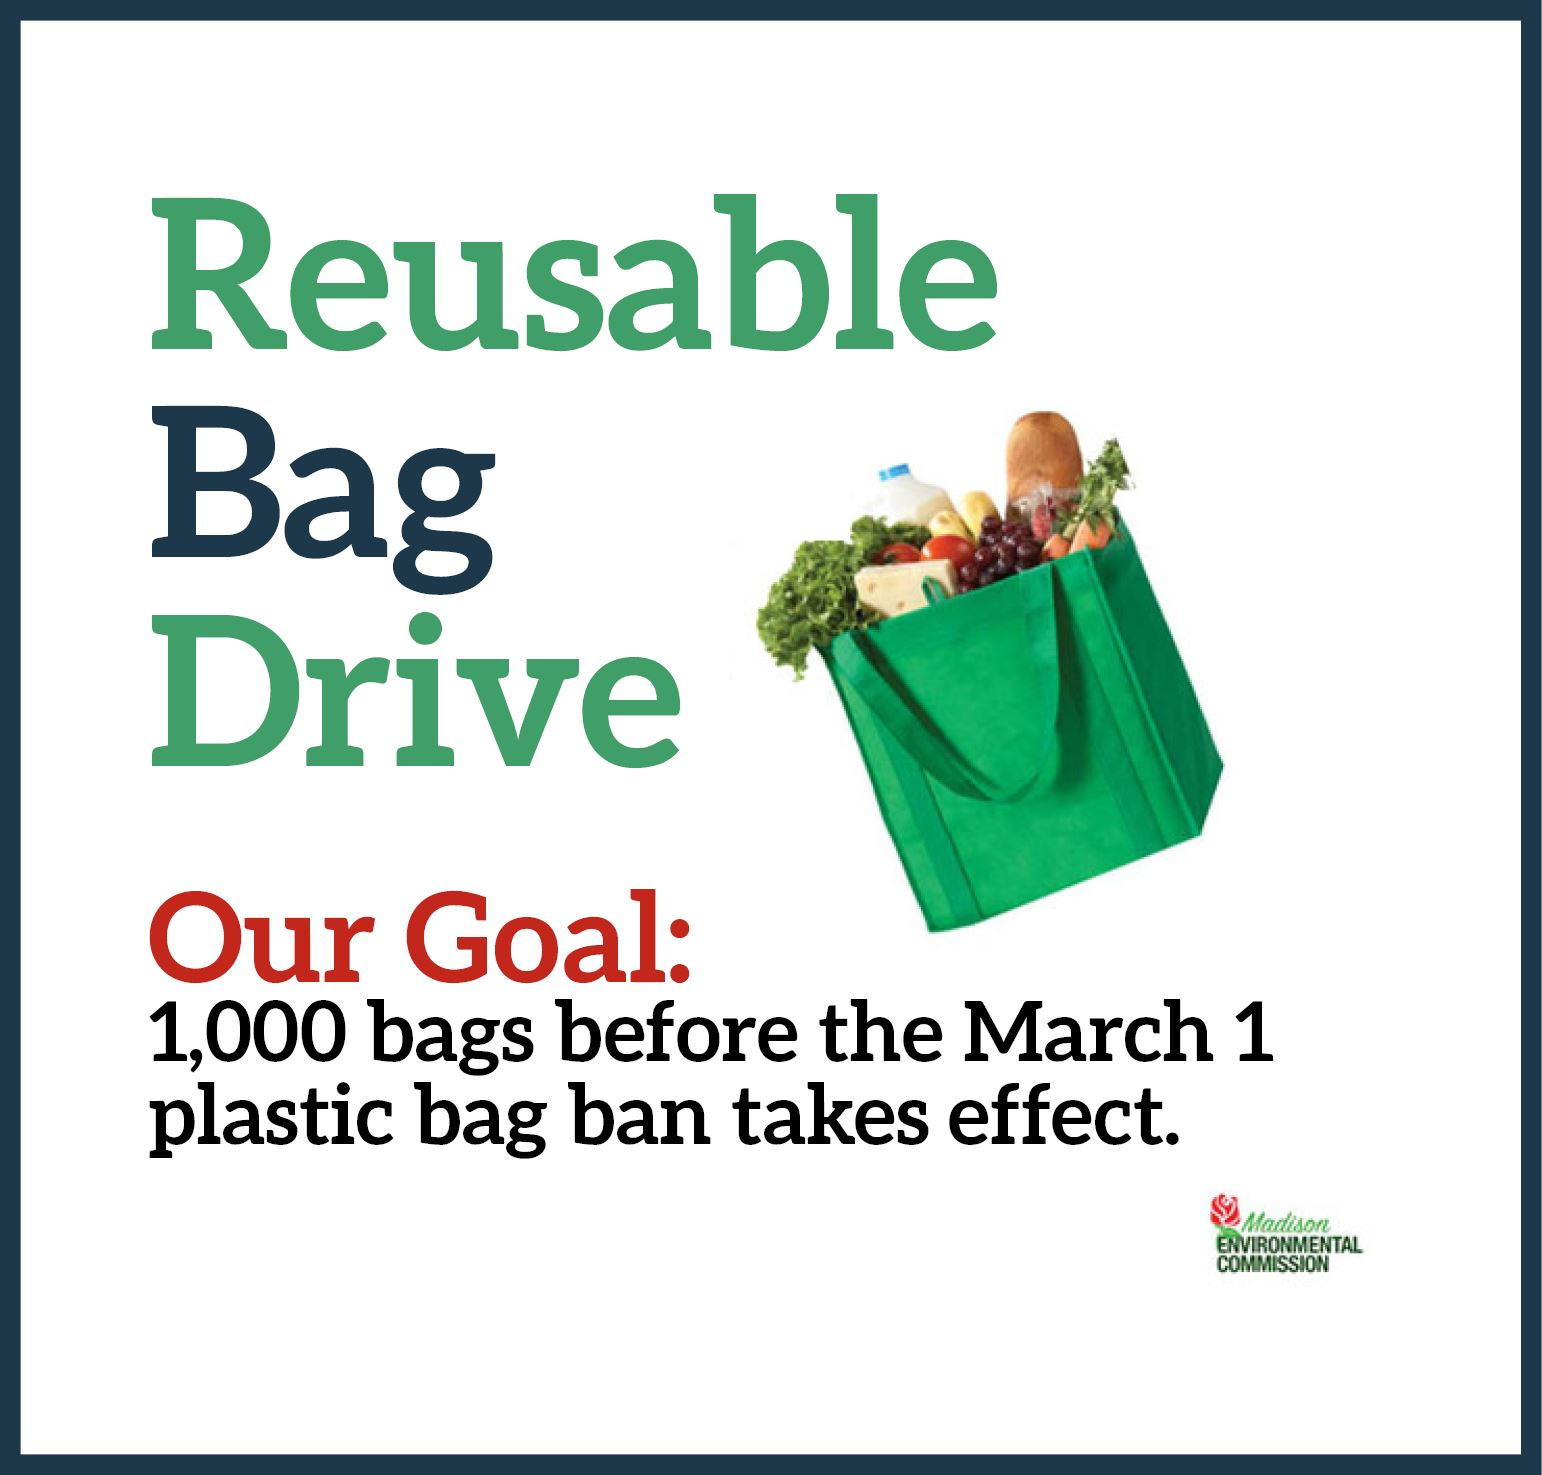 Reusable Bag Drive